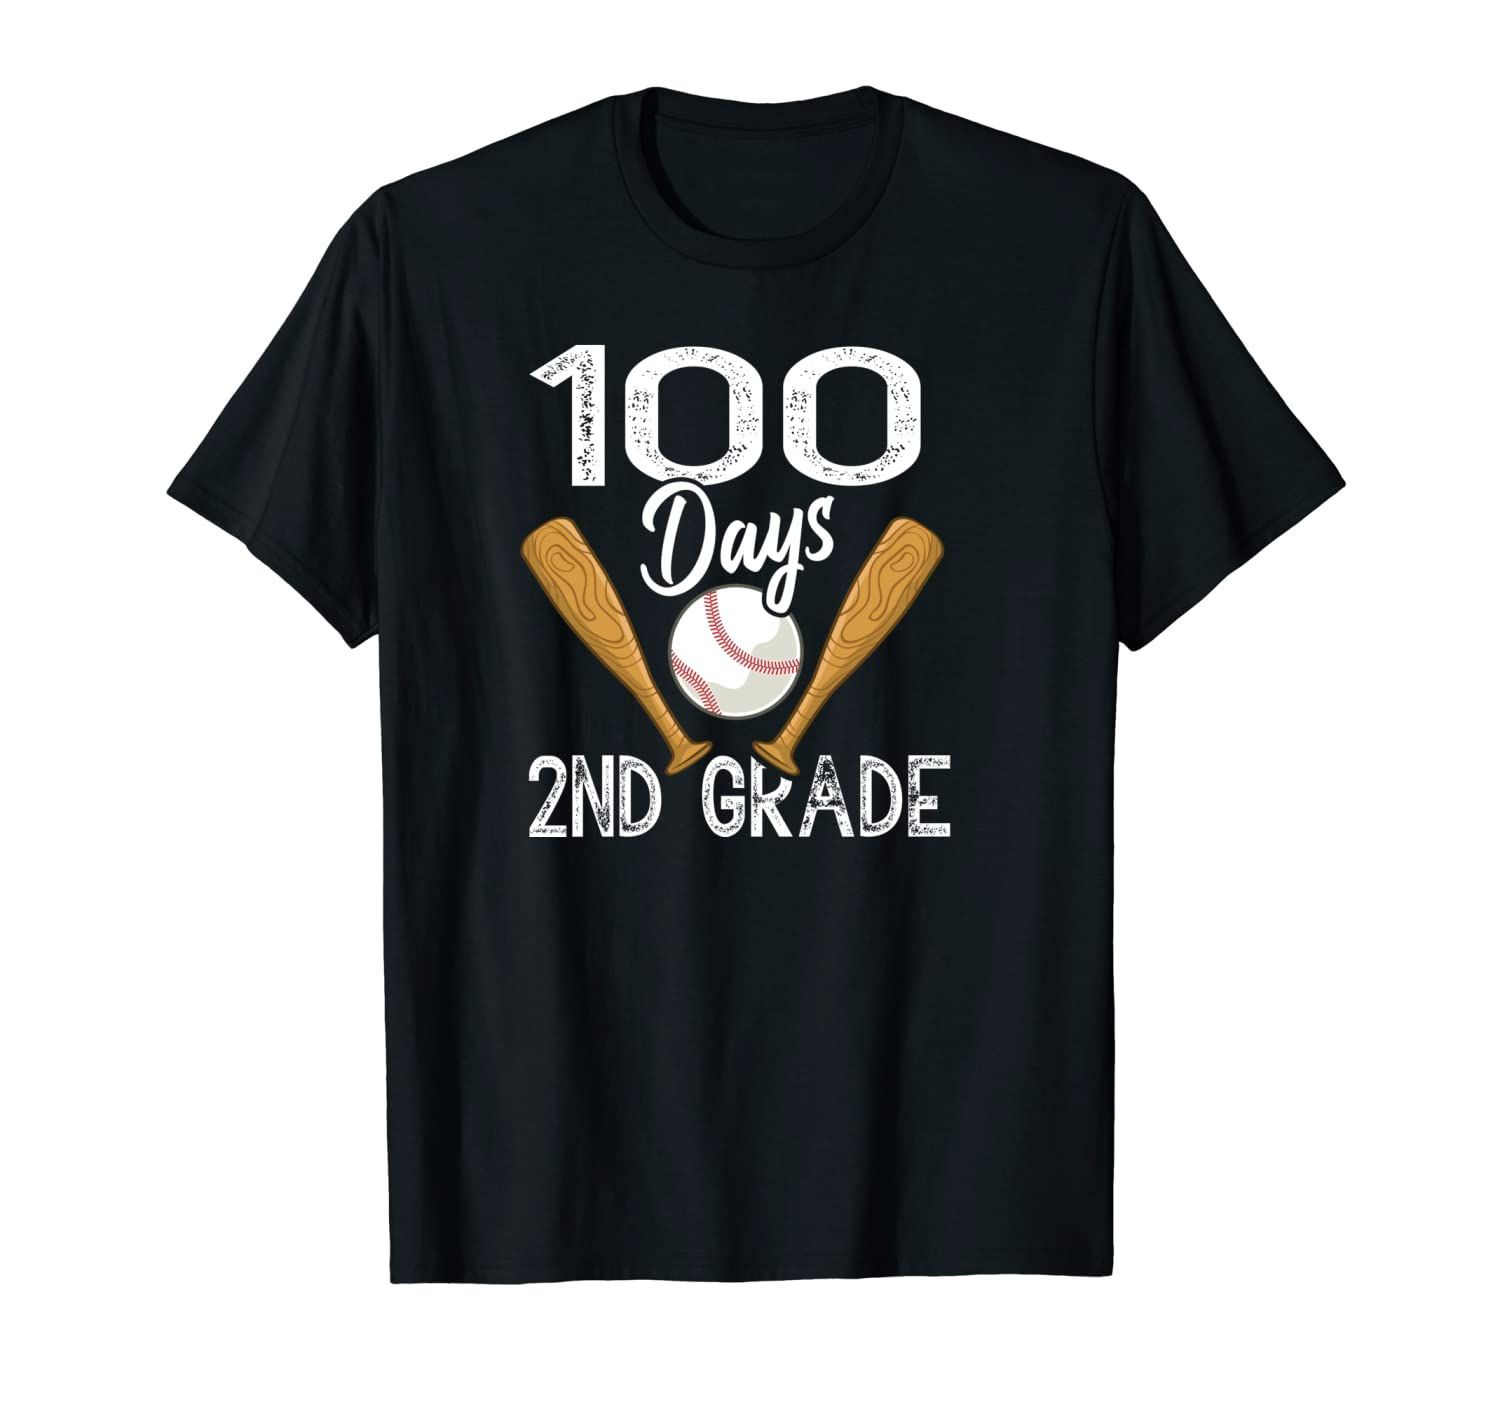 100 Days 2nd Grade School Baseball Bat Sport Teacher Student Unisex T-Shirt